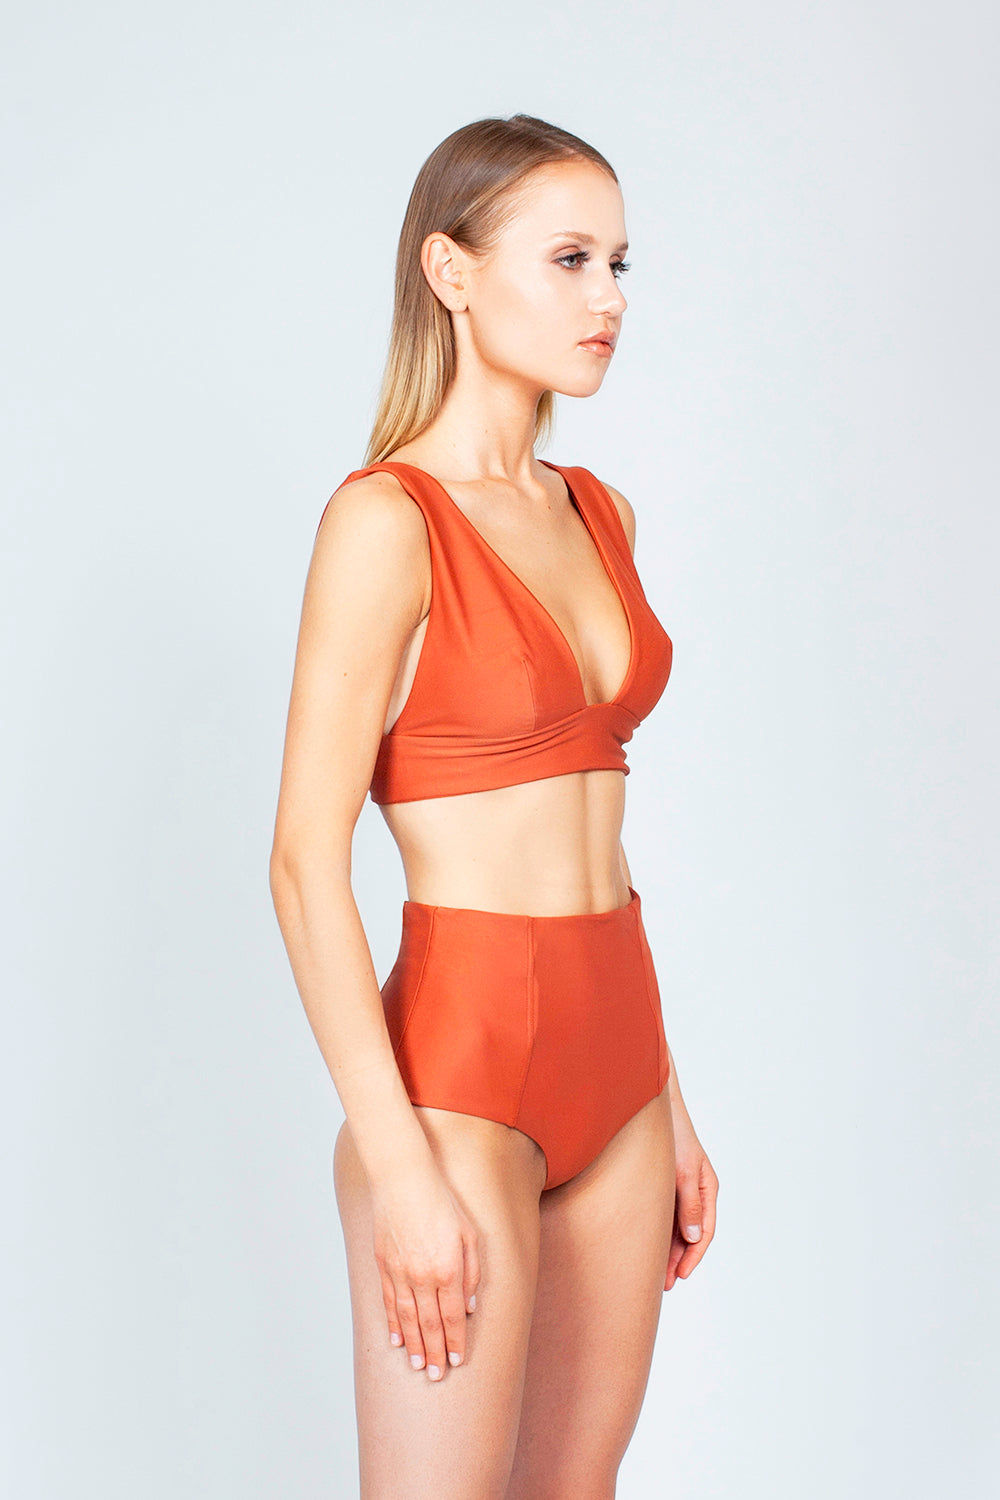 THE ONES WHO Dive Long Triangle Bikini Top - Copper Orange Bikini Top | Copper Orange| The Ones Who Dive Long Triangle Bikini Top - Copper Orange Long triangle top  V neckline  Thick bra band  V Back  Pull over  Made in LA  Fabric: 80% Nylon 20% Elastane Side View